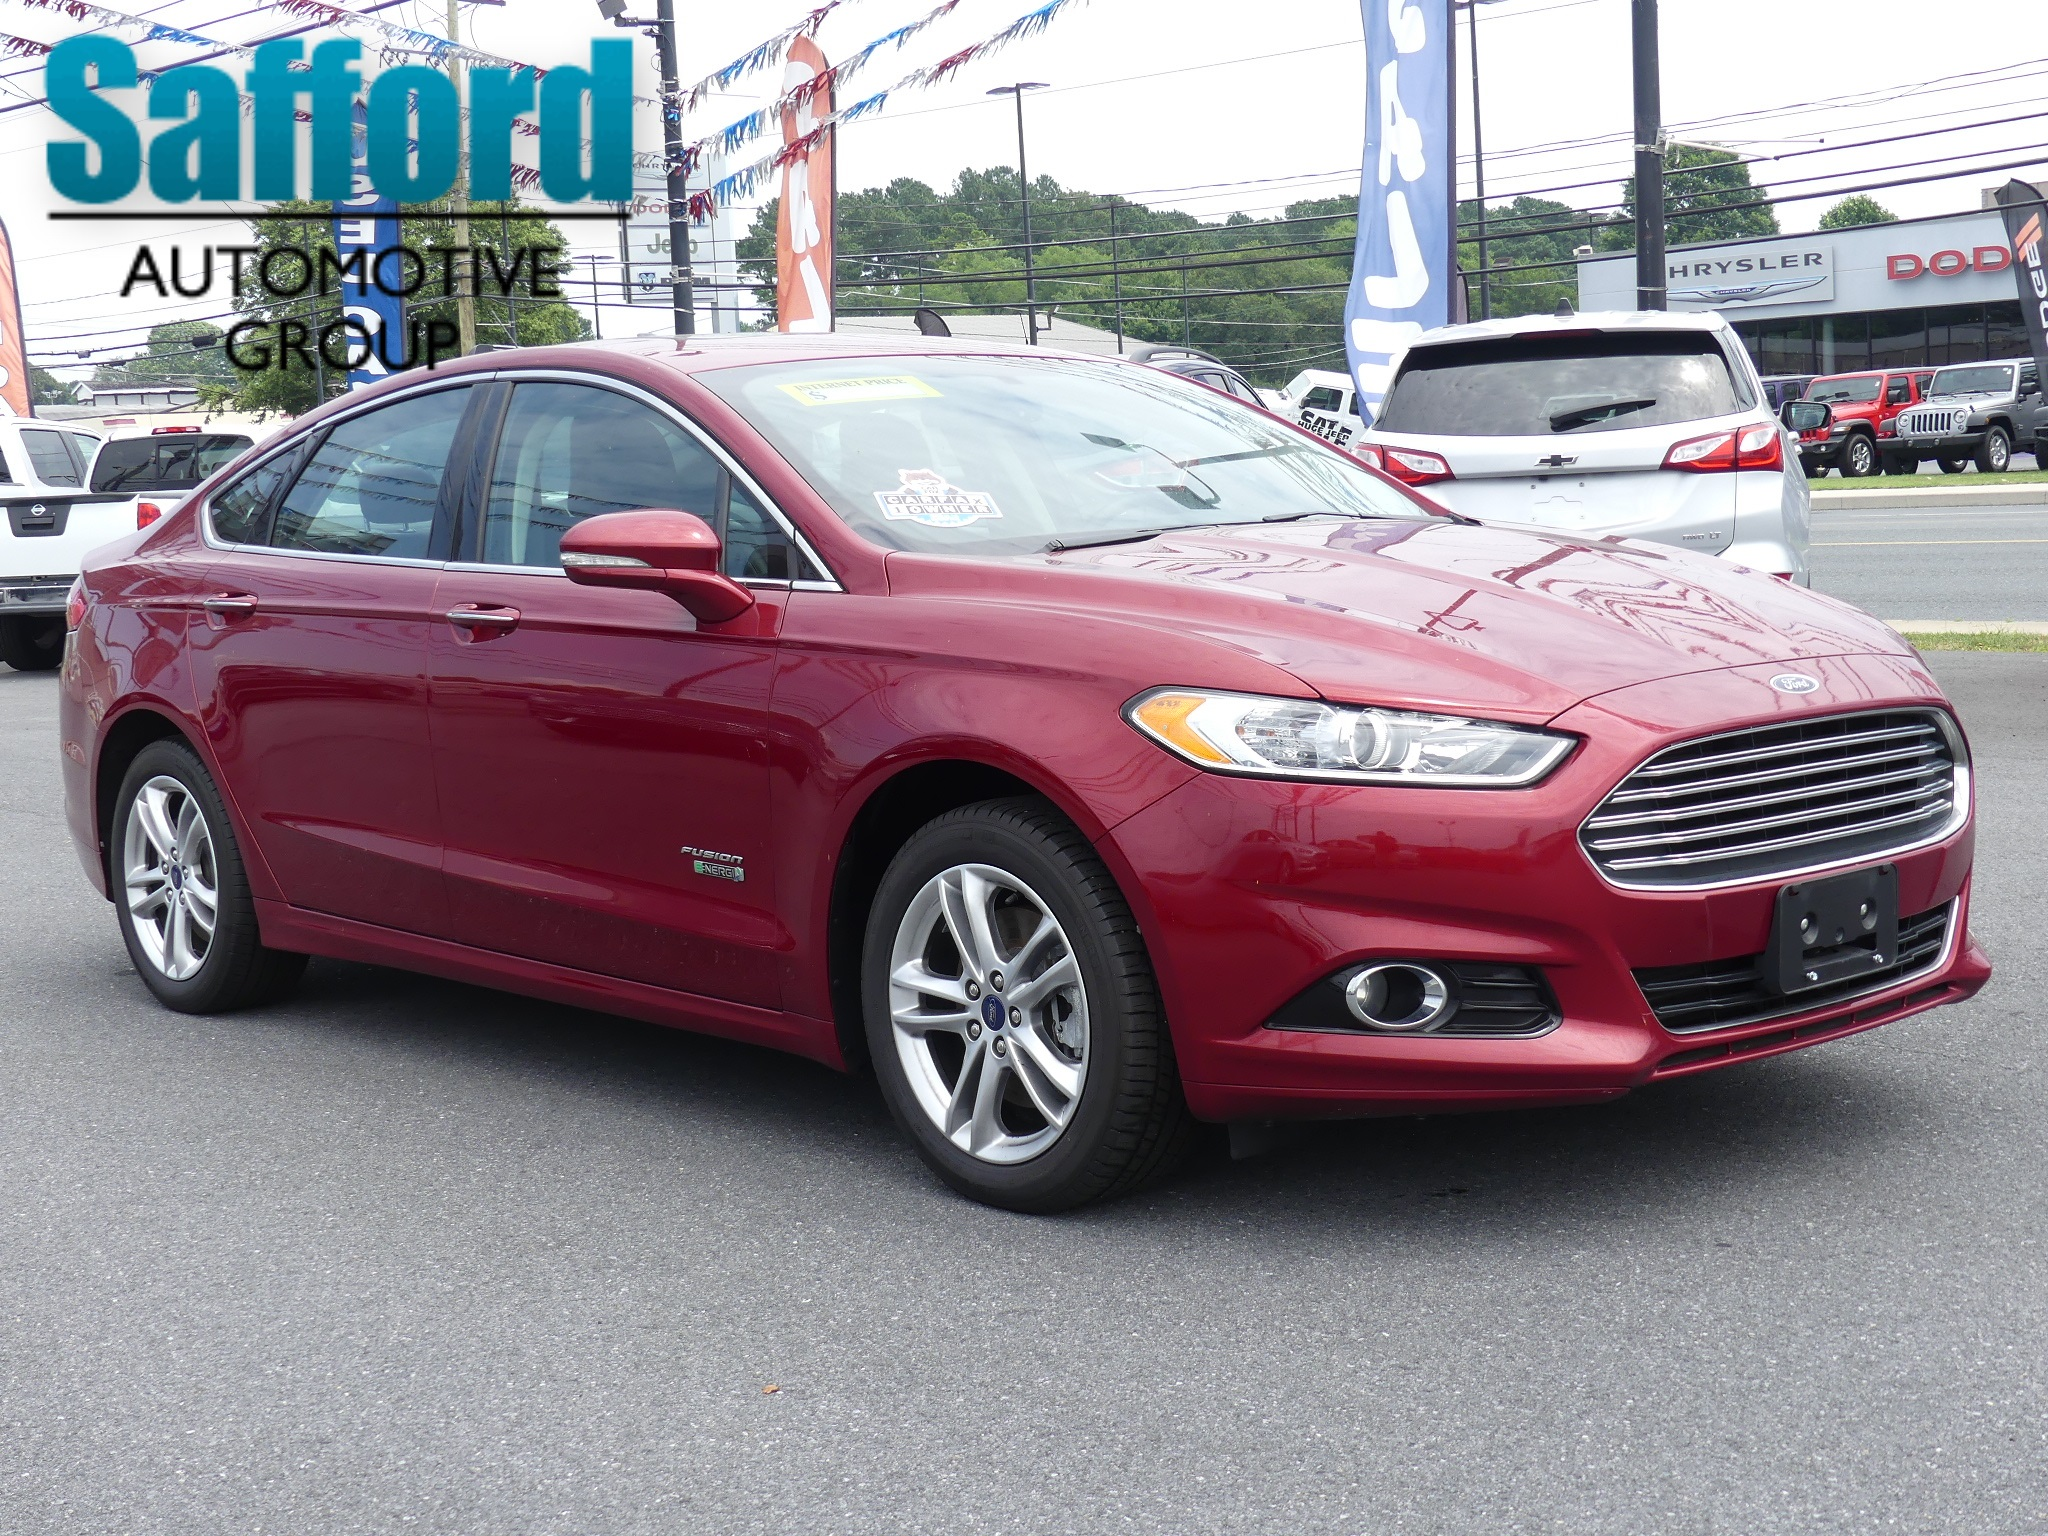 Ford Fusion 07 Owner Manual | 2019 Ebook Library